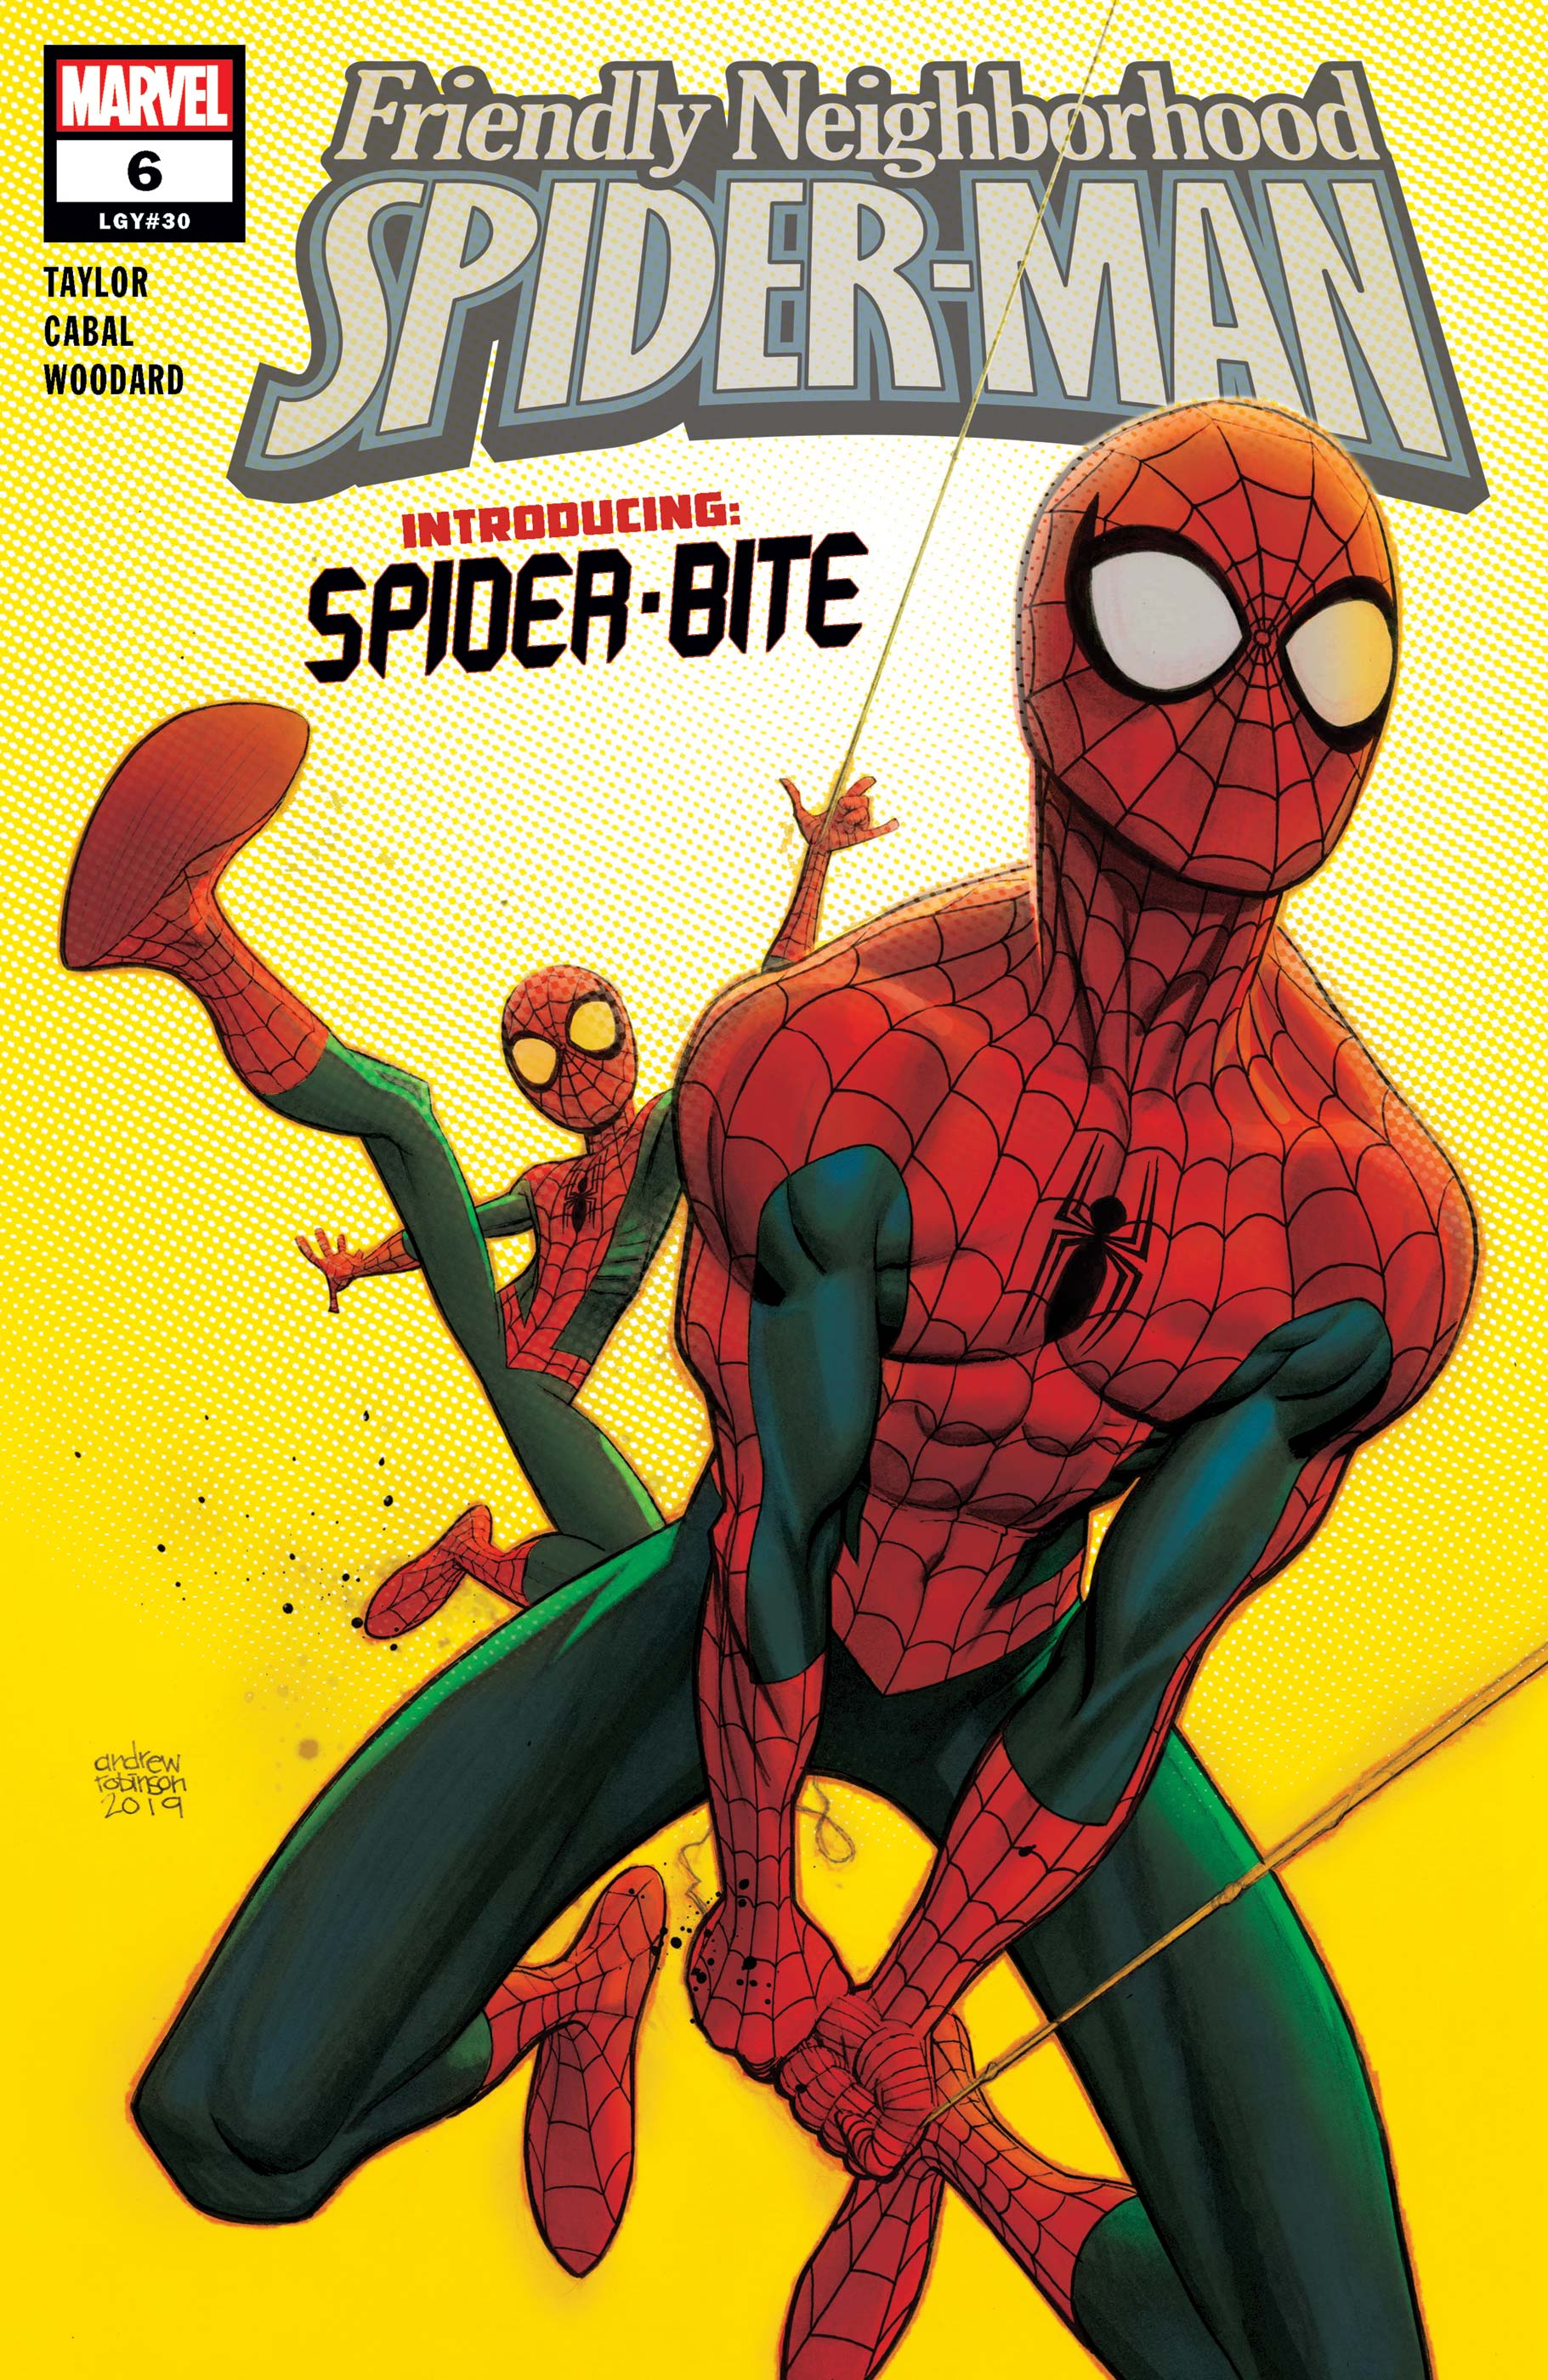 Image result for friendly Neighborhood spiderman #6 cover